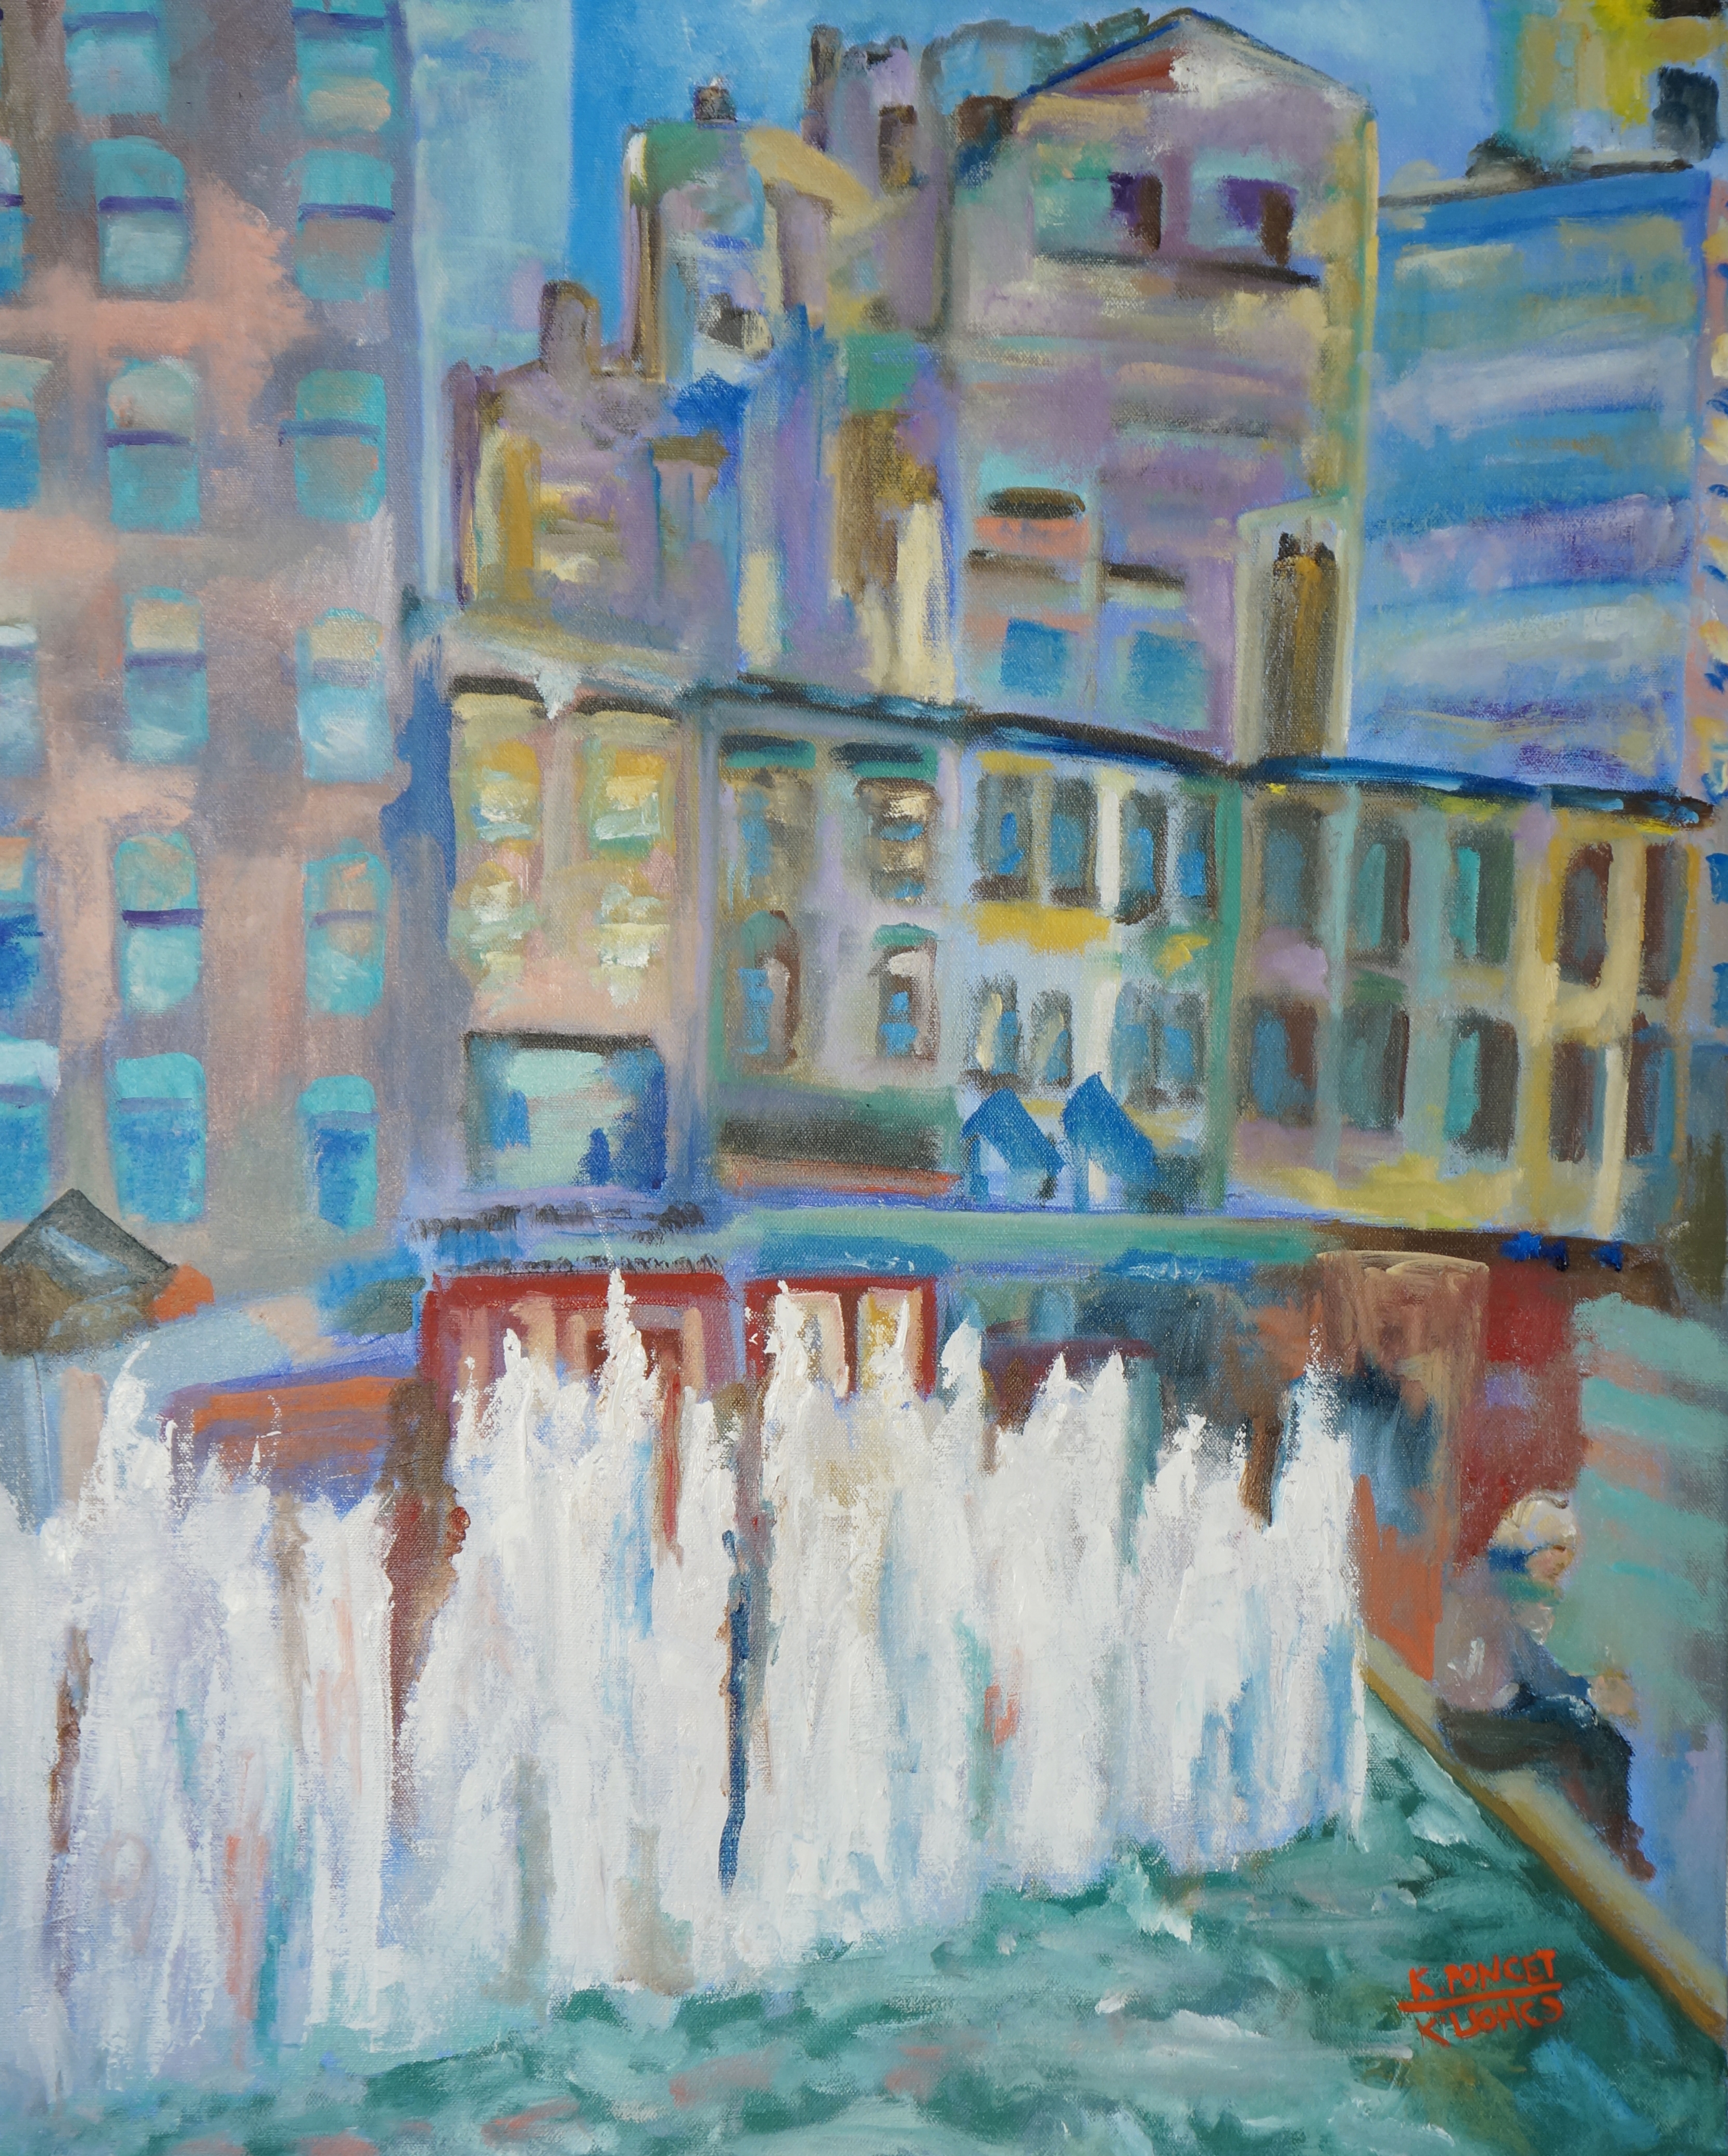 Contemporary oil painting representing the fountain on the 57th street and Lexington avenue in New York.